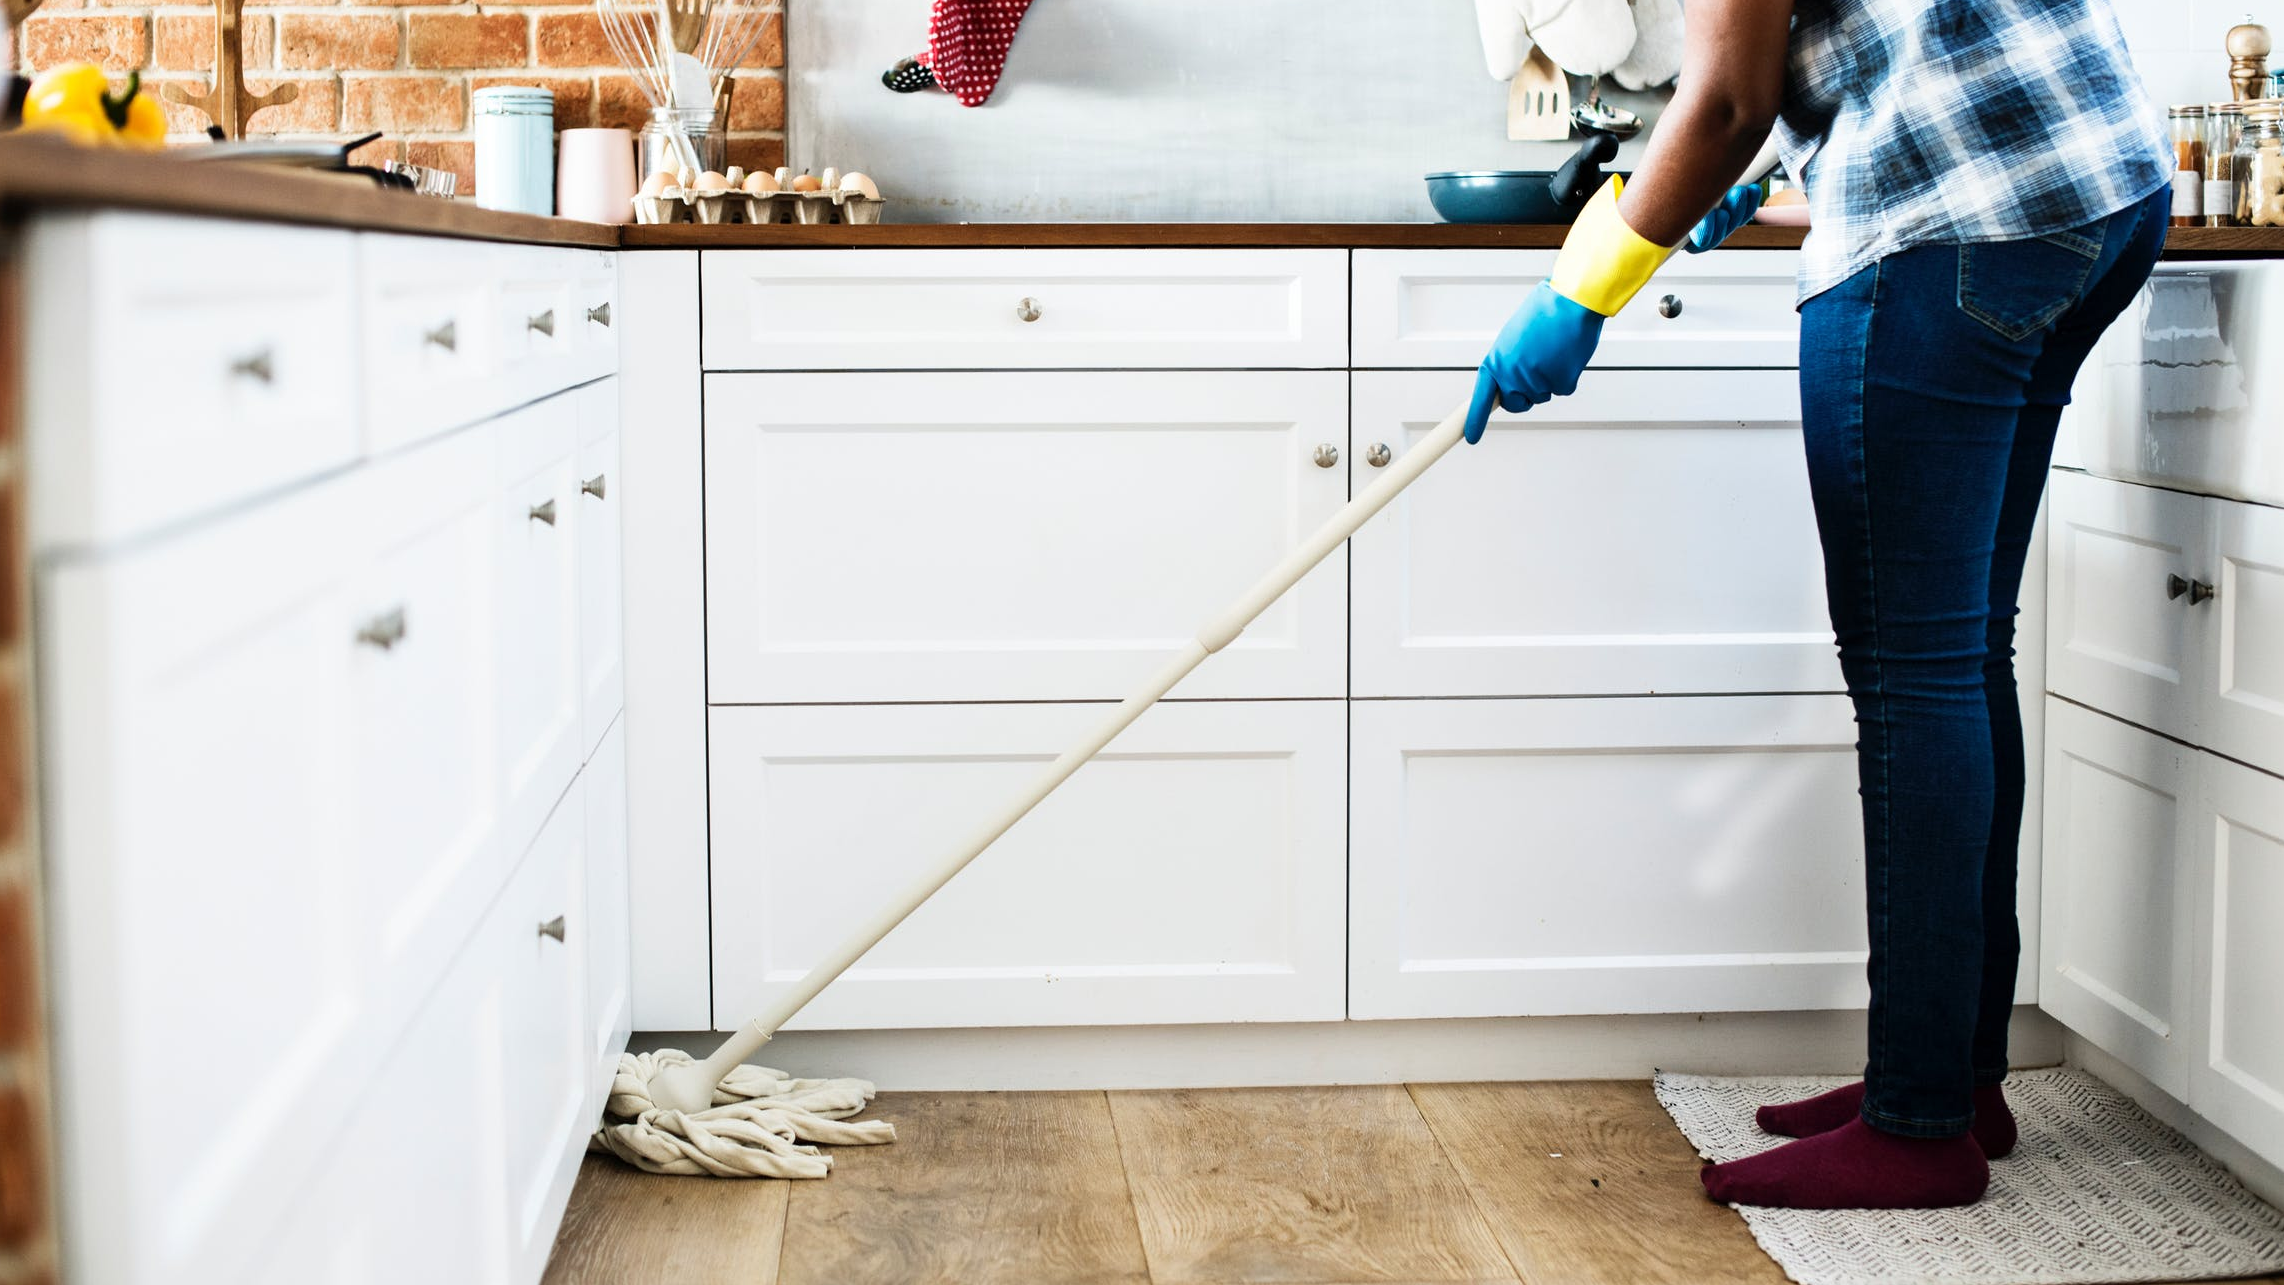 How often do you need your home cleaned?